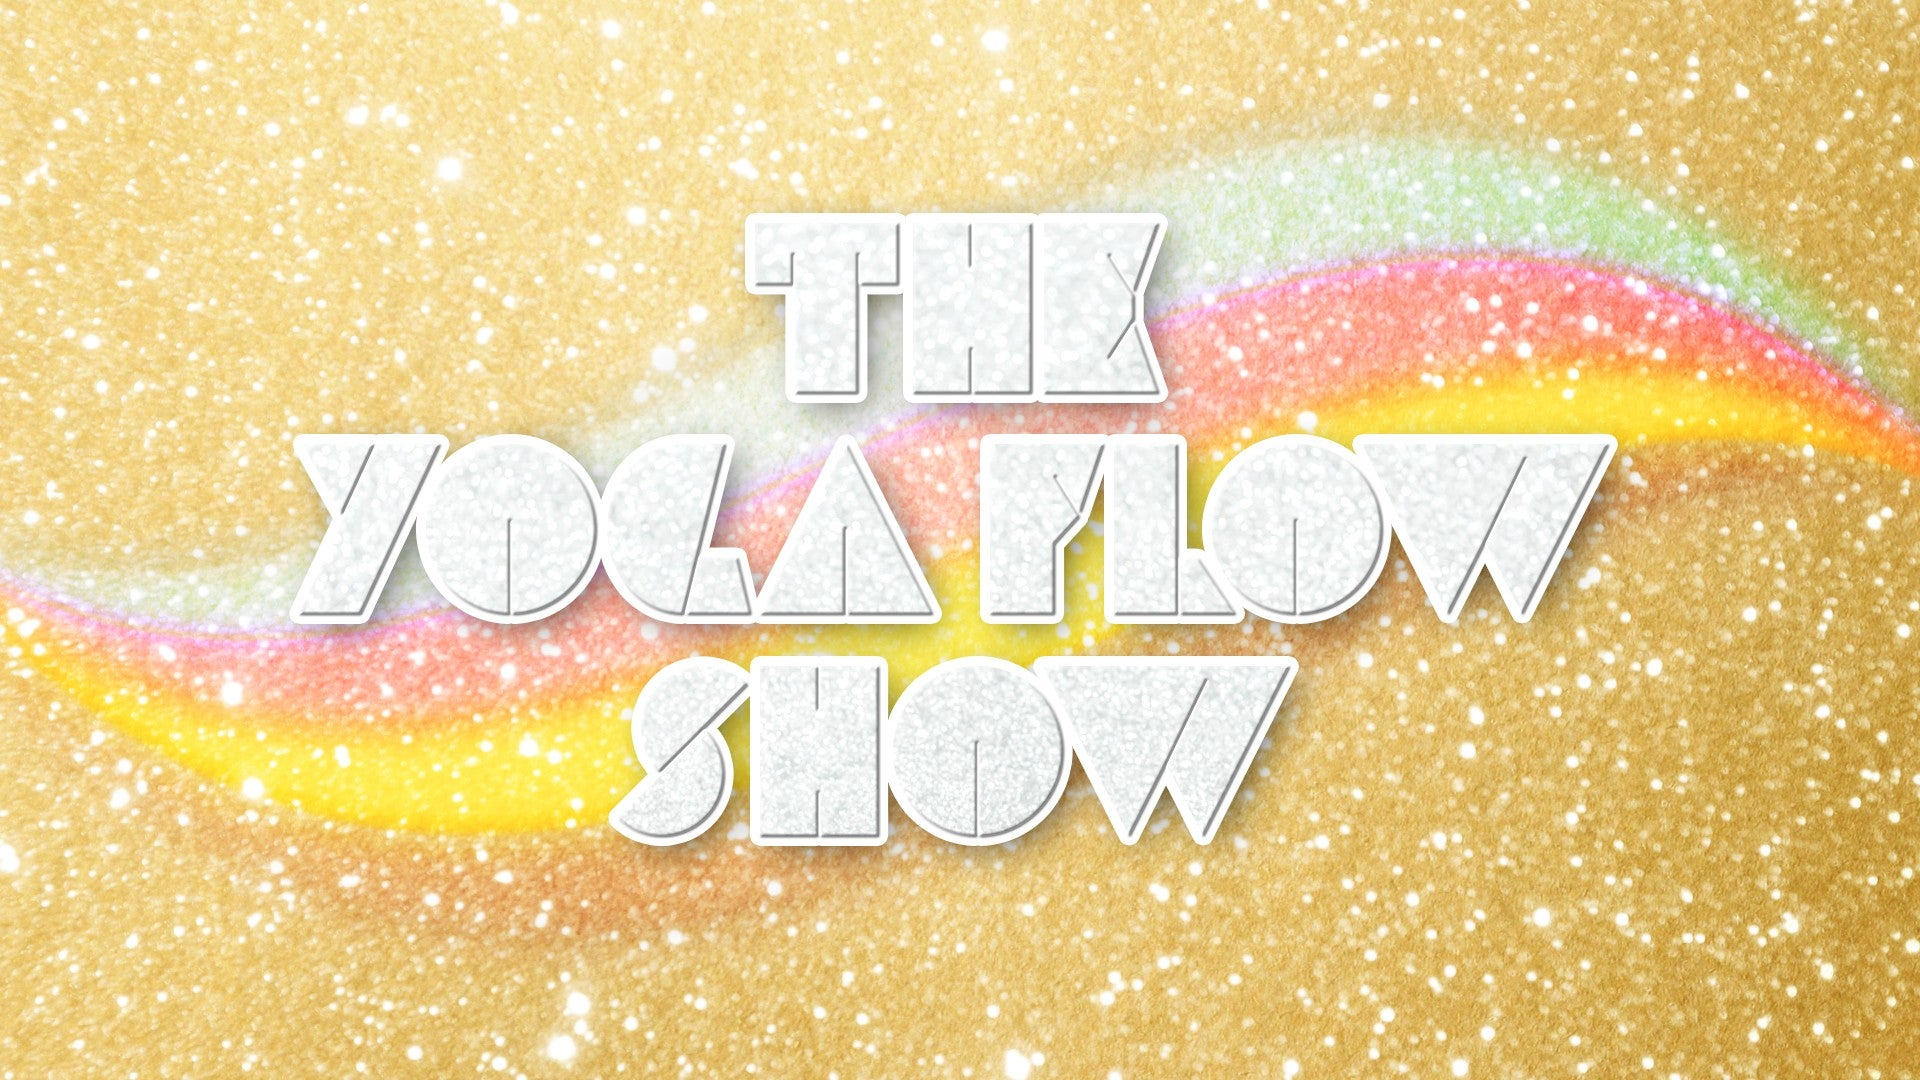 The Yoga Flow Show Artwork